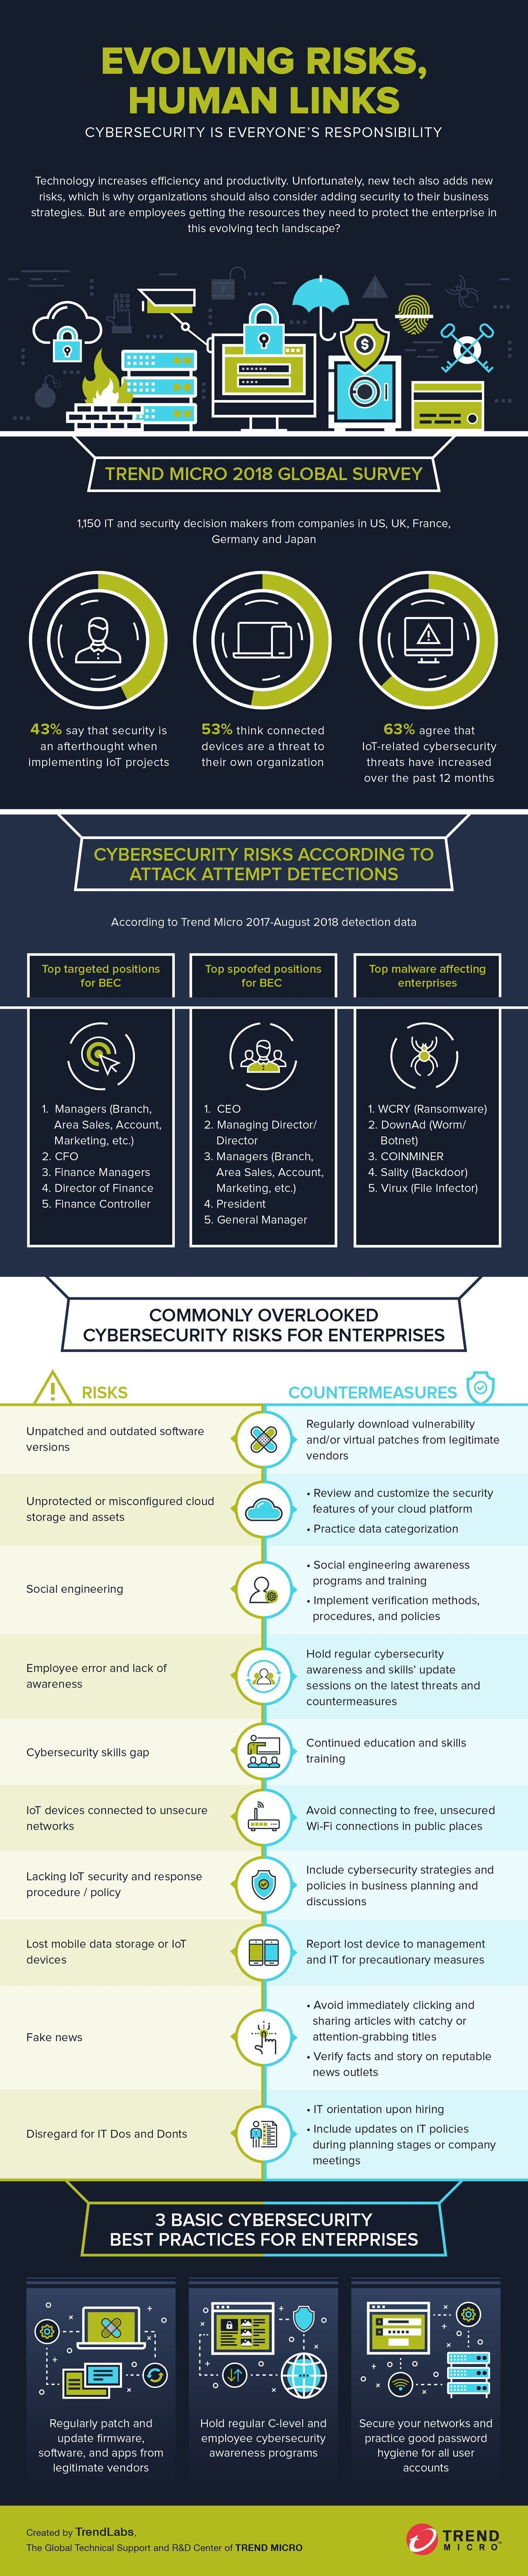 cybercrime and security documentation